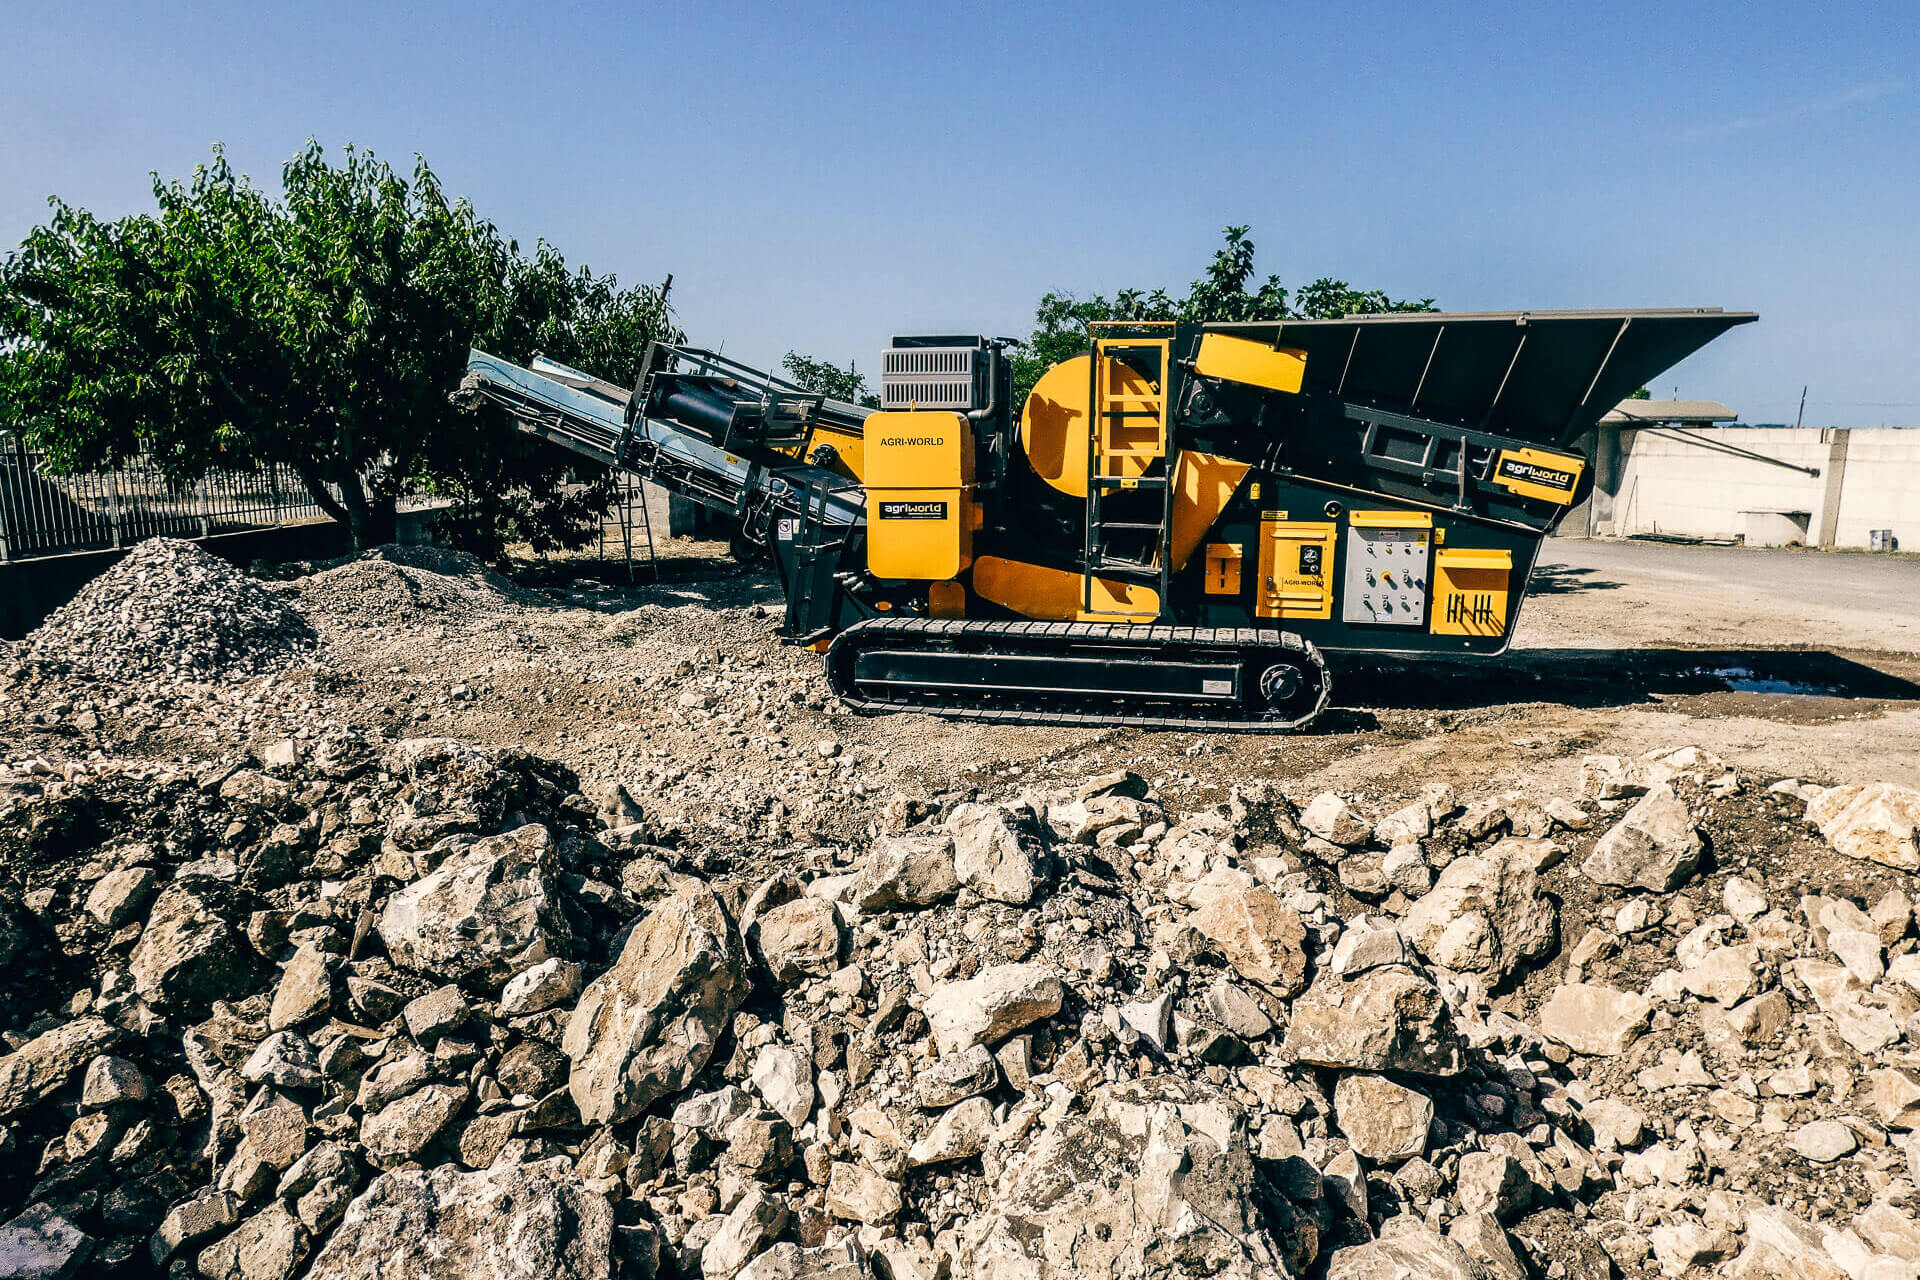 agri world-jaws crusher-frantoio a mascelle-italy